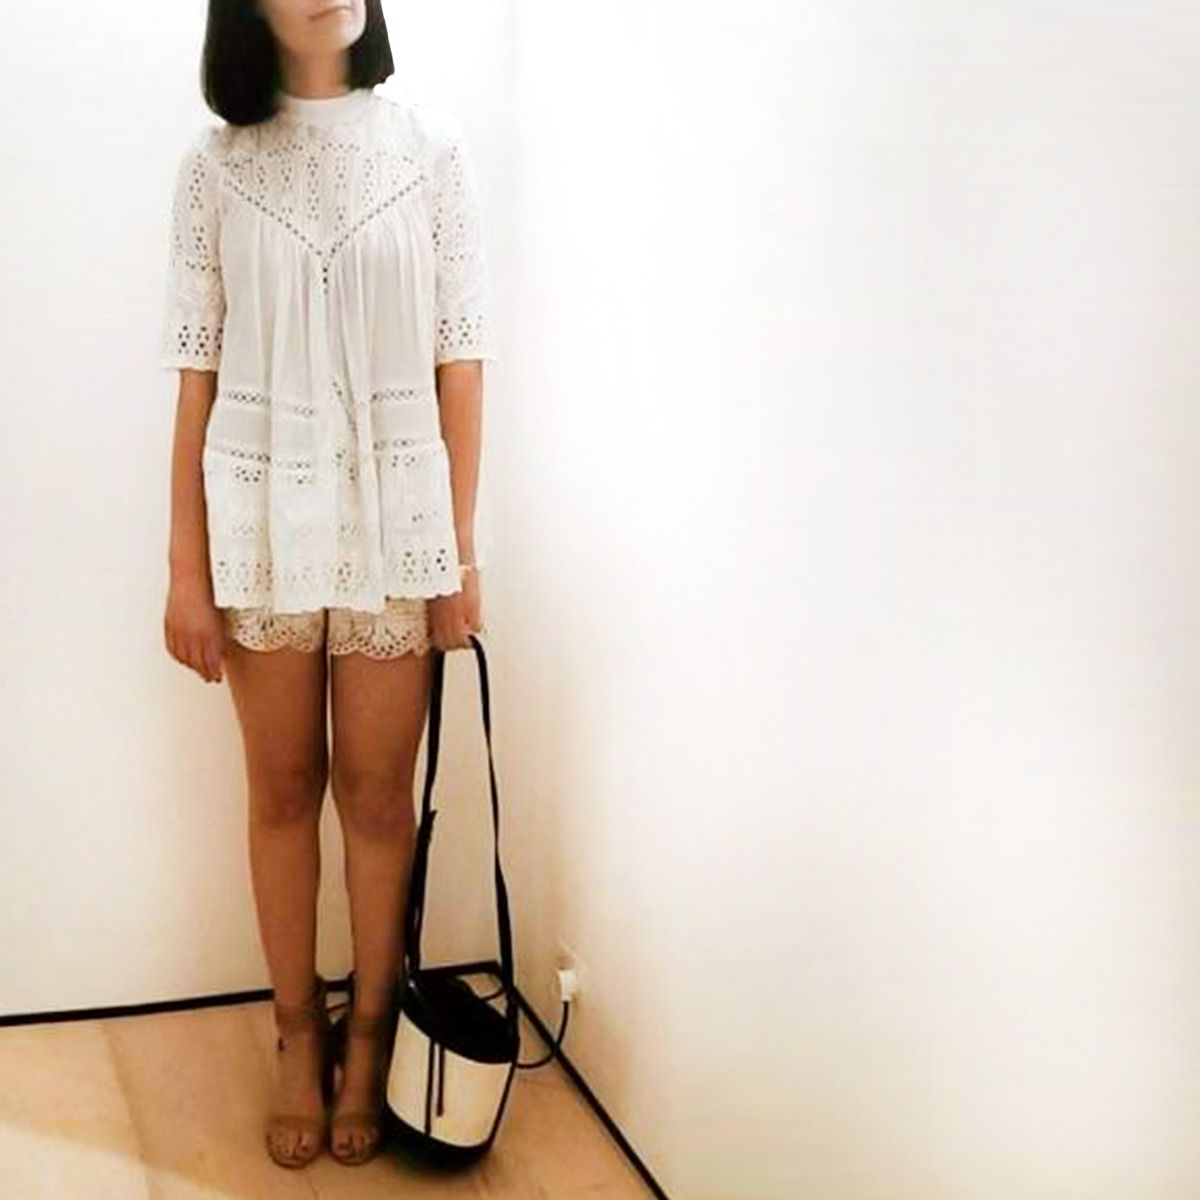 722ebcff08c Victoria in Zimmermann Doncaster store wears Porcelain Panelled Smock and  Confetti Scallop Playsuit.